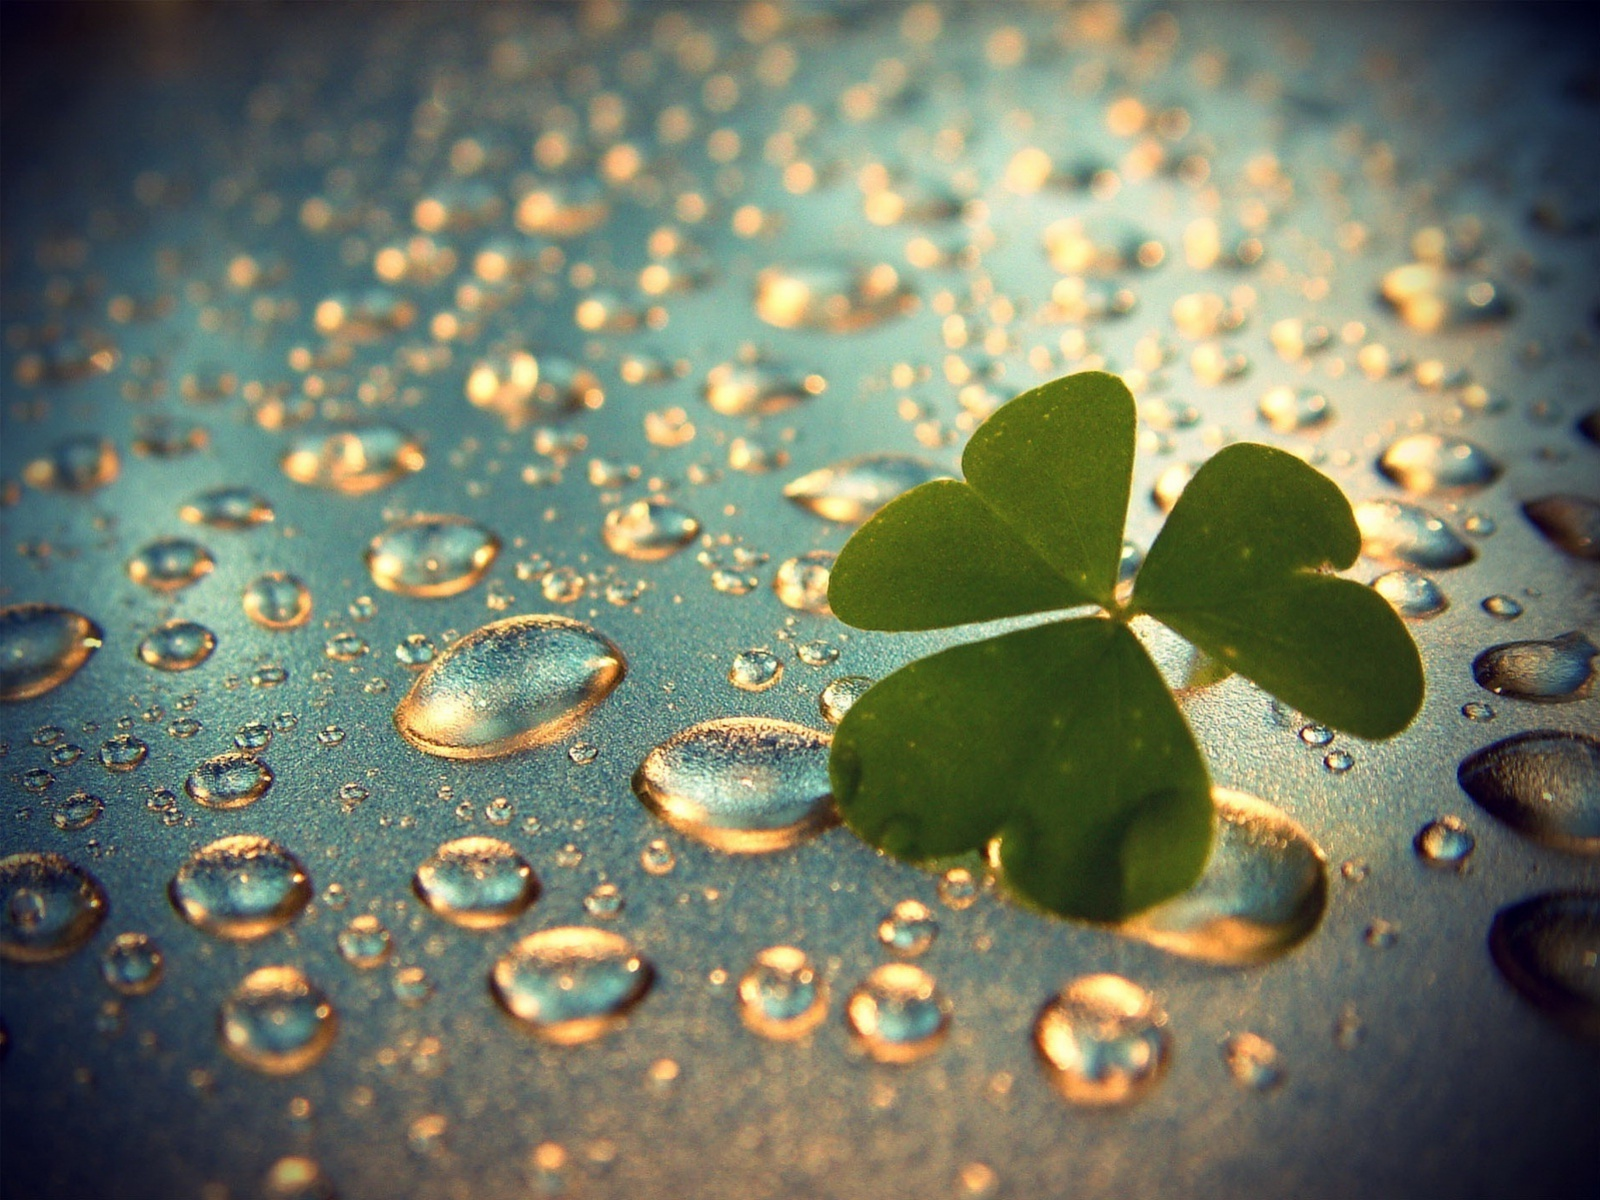 32600 download wallpaper Background, Leaves, Drops screensavers and pictures for free